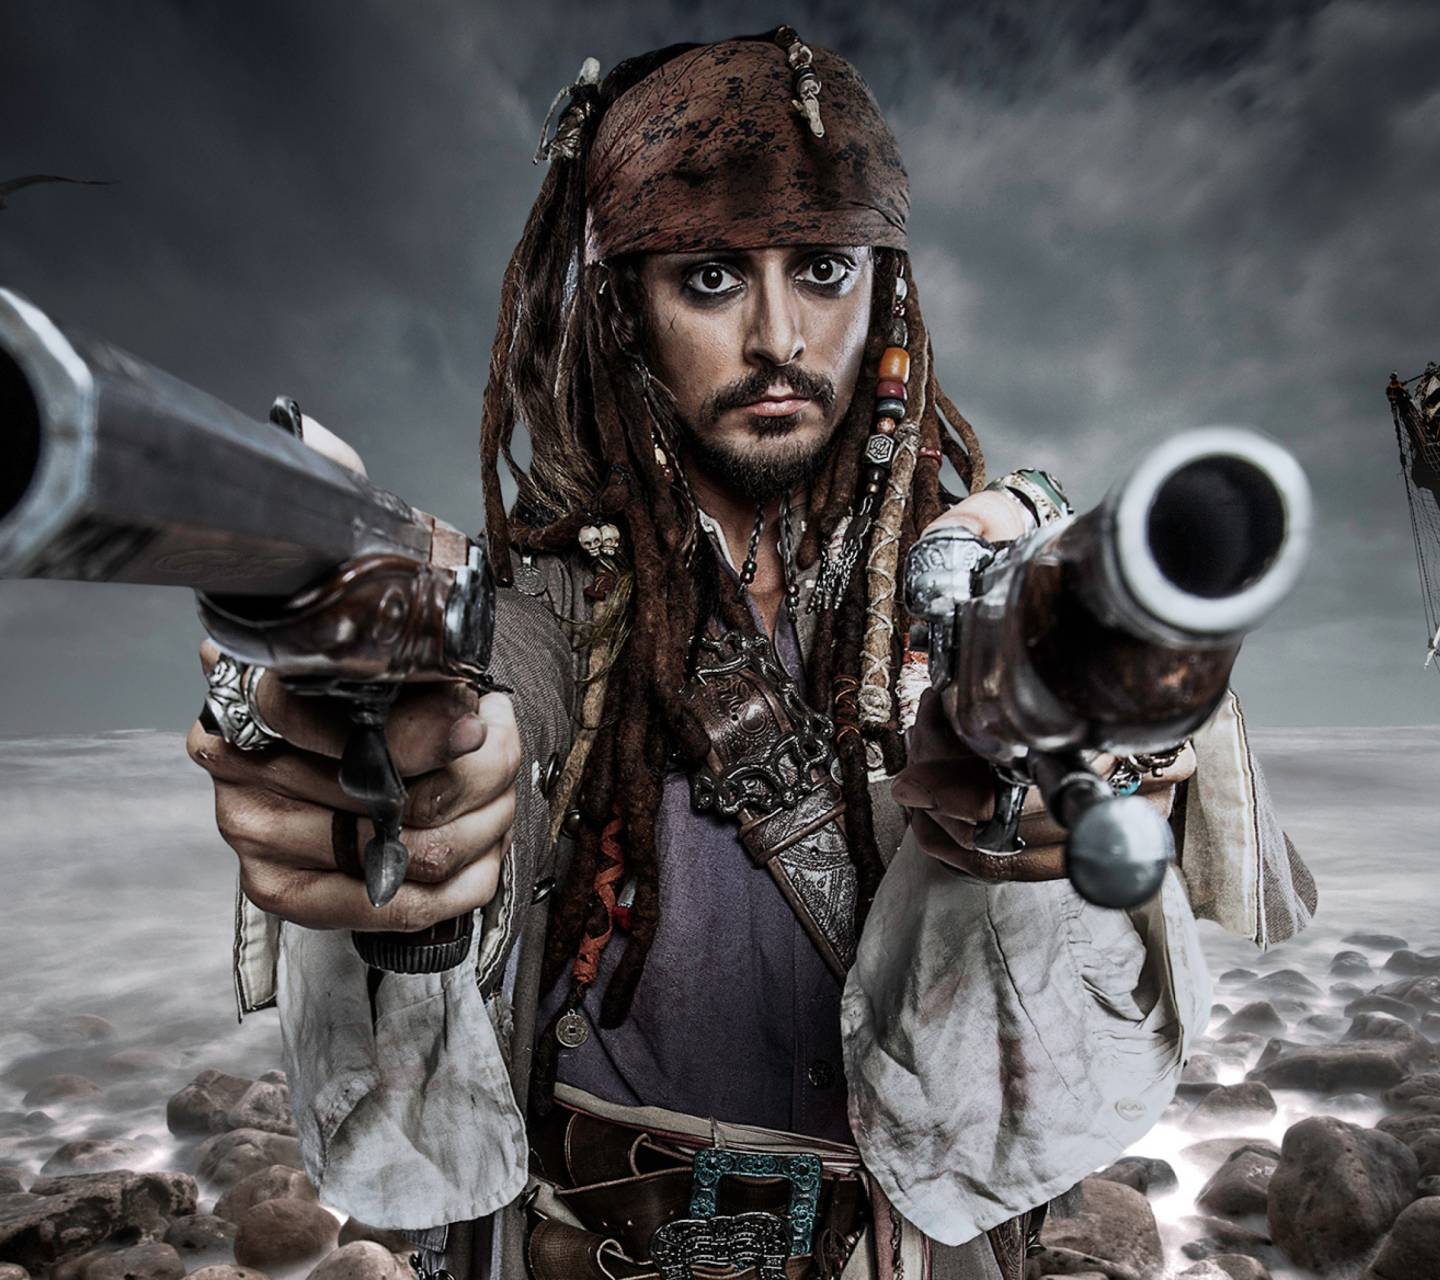 Jack Sparrow Wallpaper By Mphenomenal 22 Free On Zedge